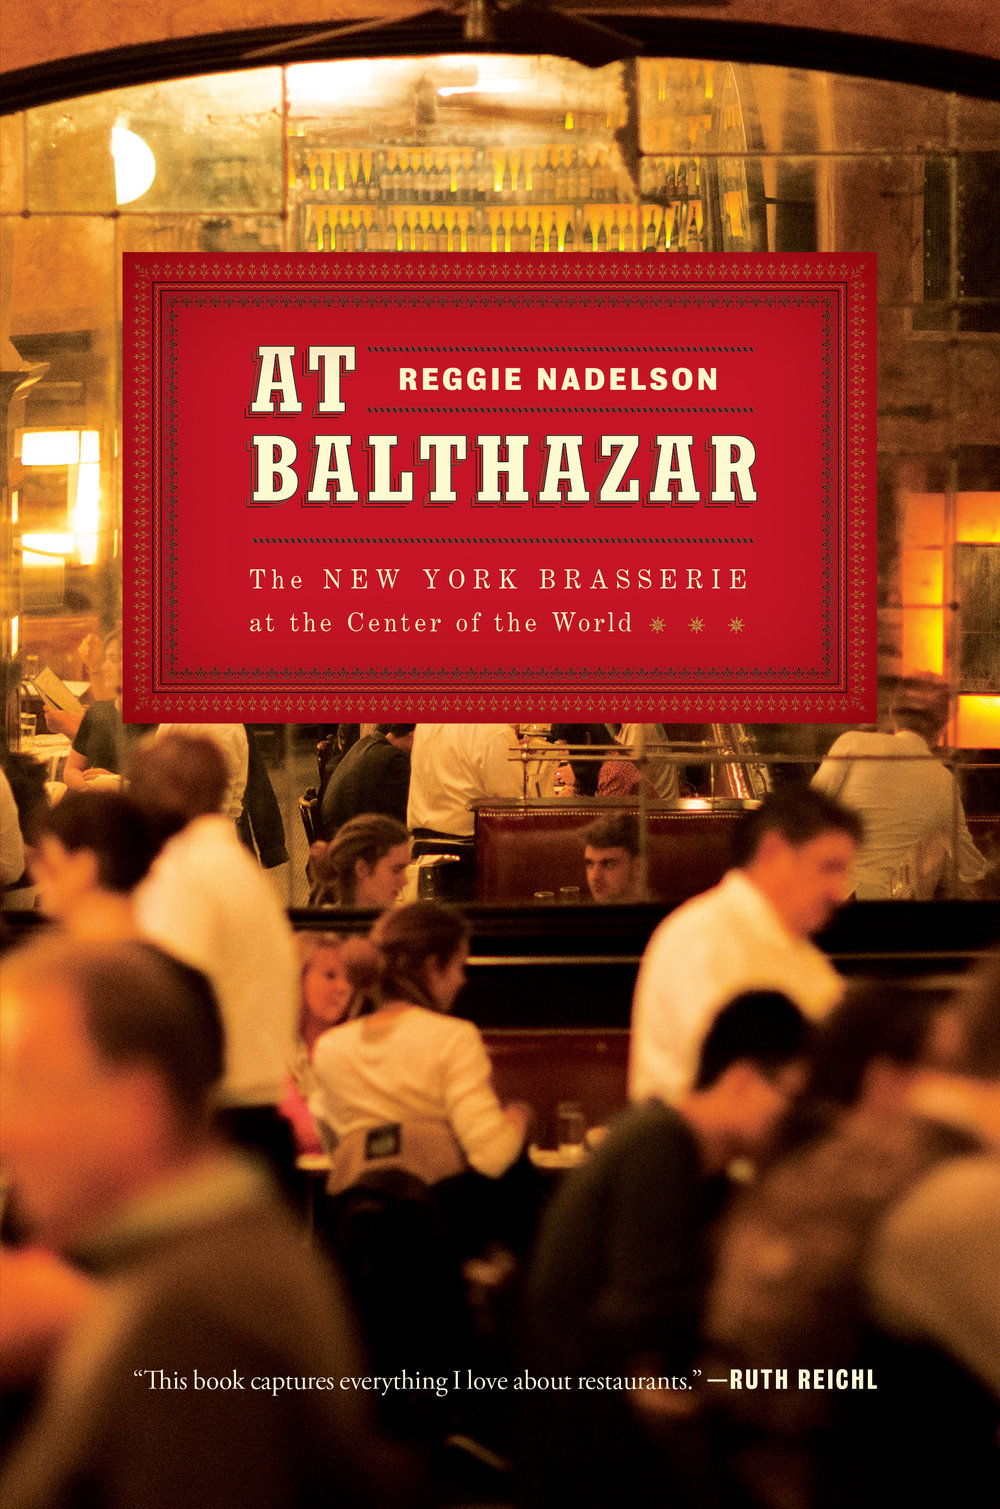 Beyond Balthazar